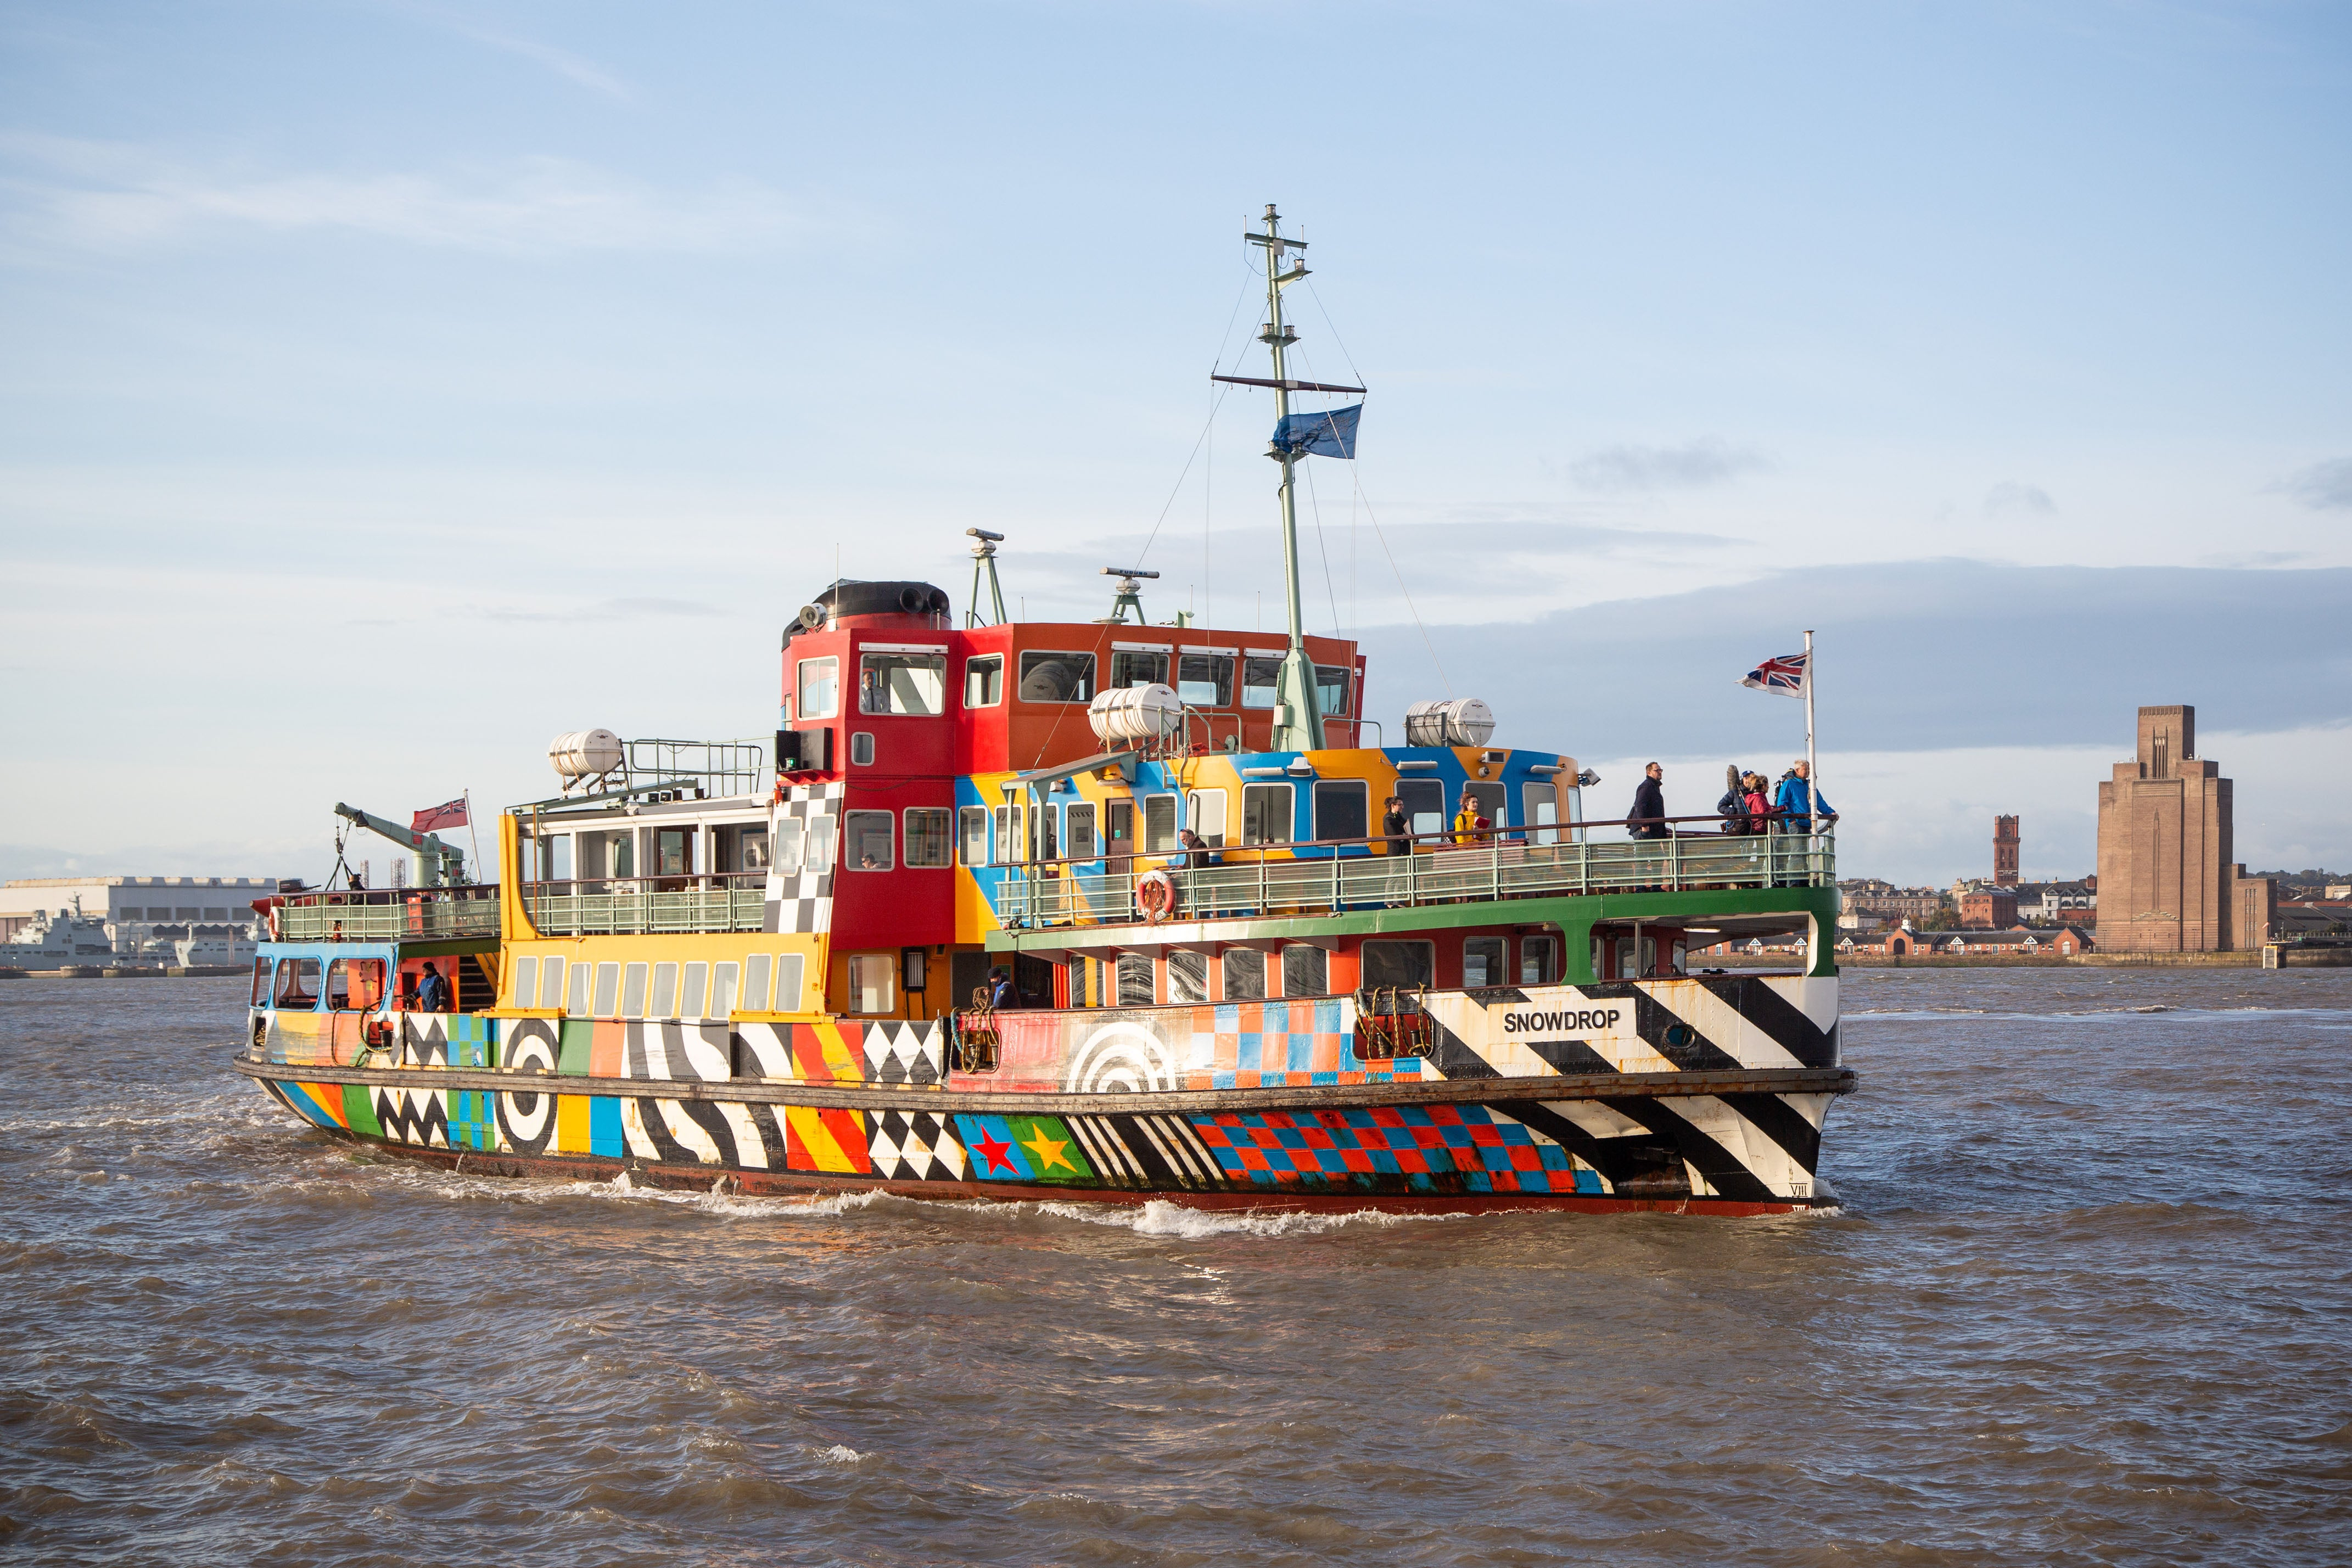 Photo of Snowdrop, a ferry in Liverpool - Our Coast